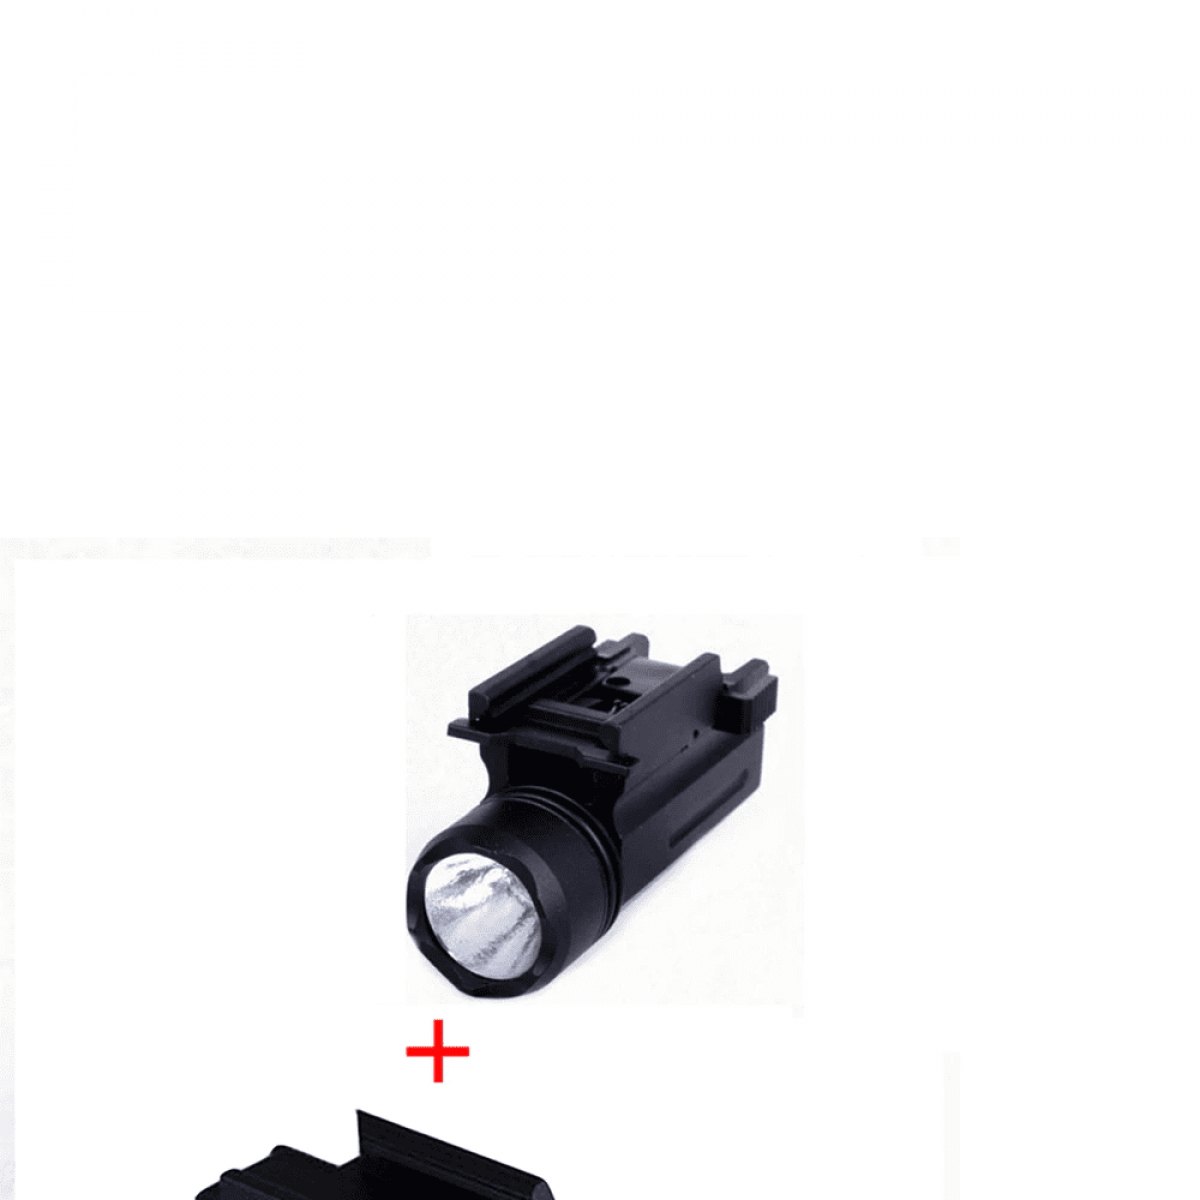 Airsoft Full Metal 2 in 1 Laser Sight and Flashlight for 20mm Picatinny rails w/Quick Detach